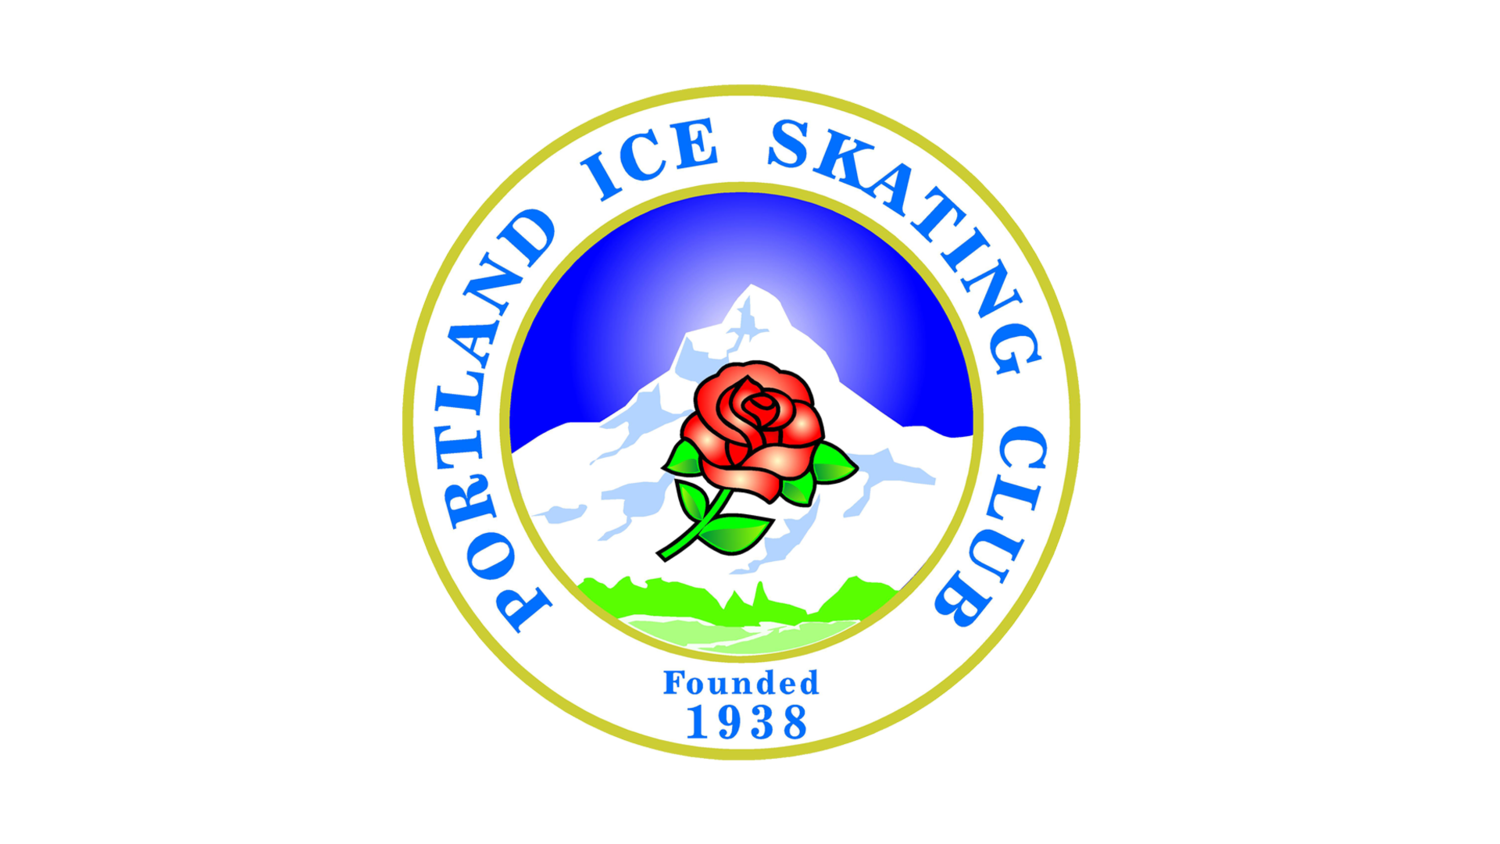 PORTLAND ICE SKATING CLUB